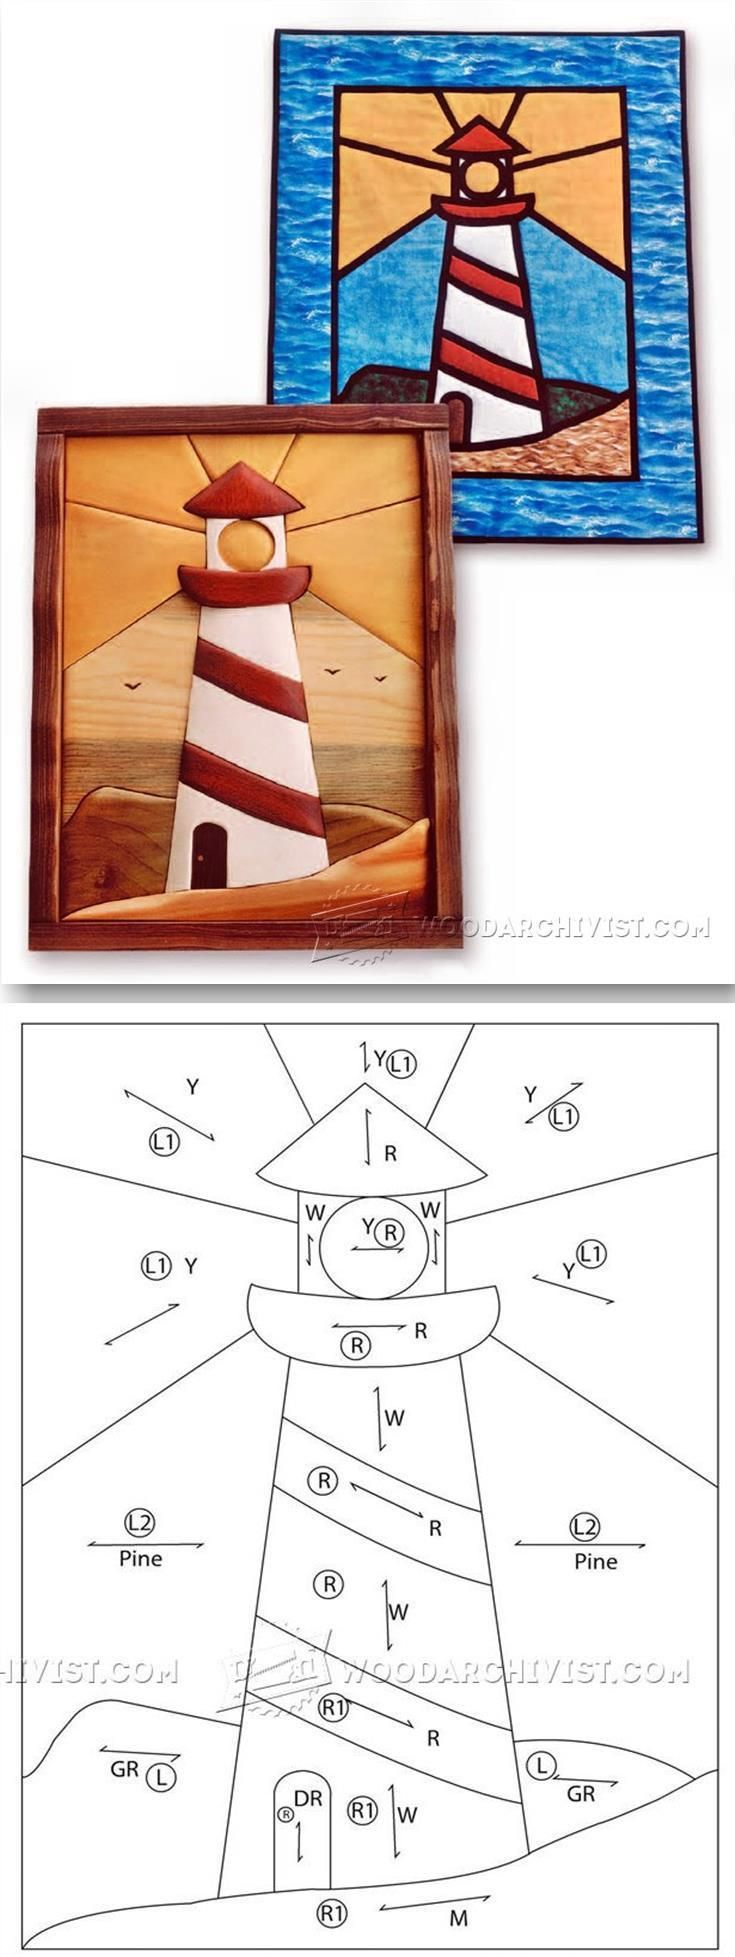 Lighthouse - Intarsia Projects, Tips and Techniques | WoodArchivist.com